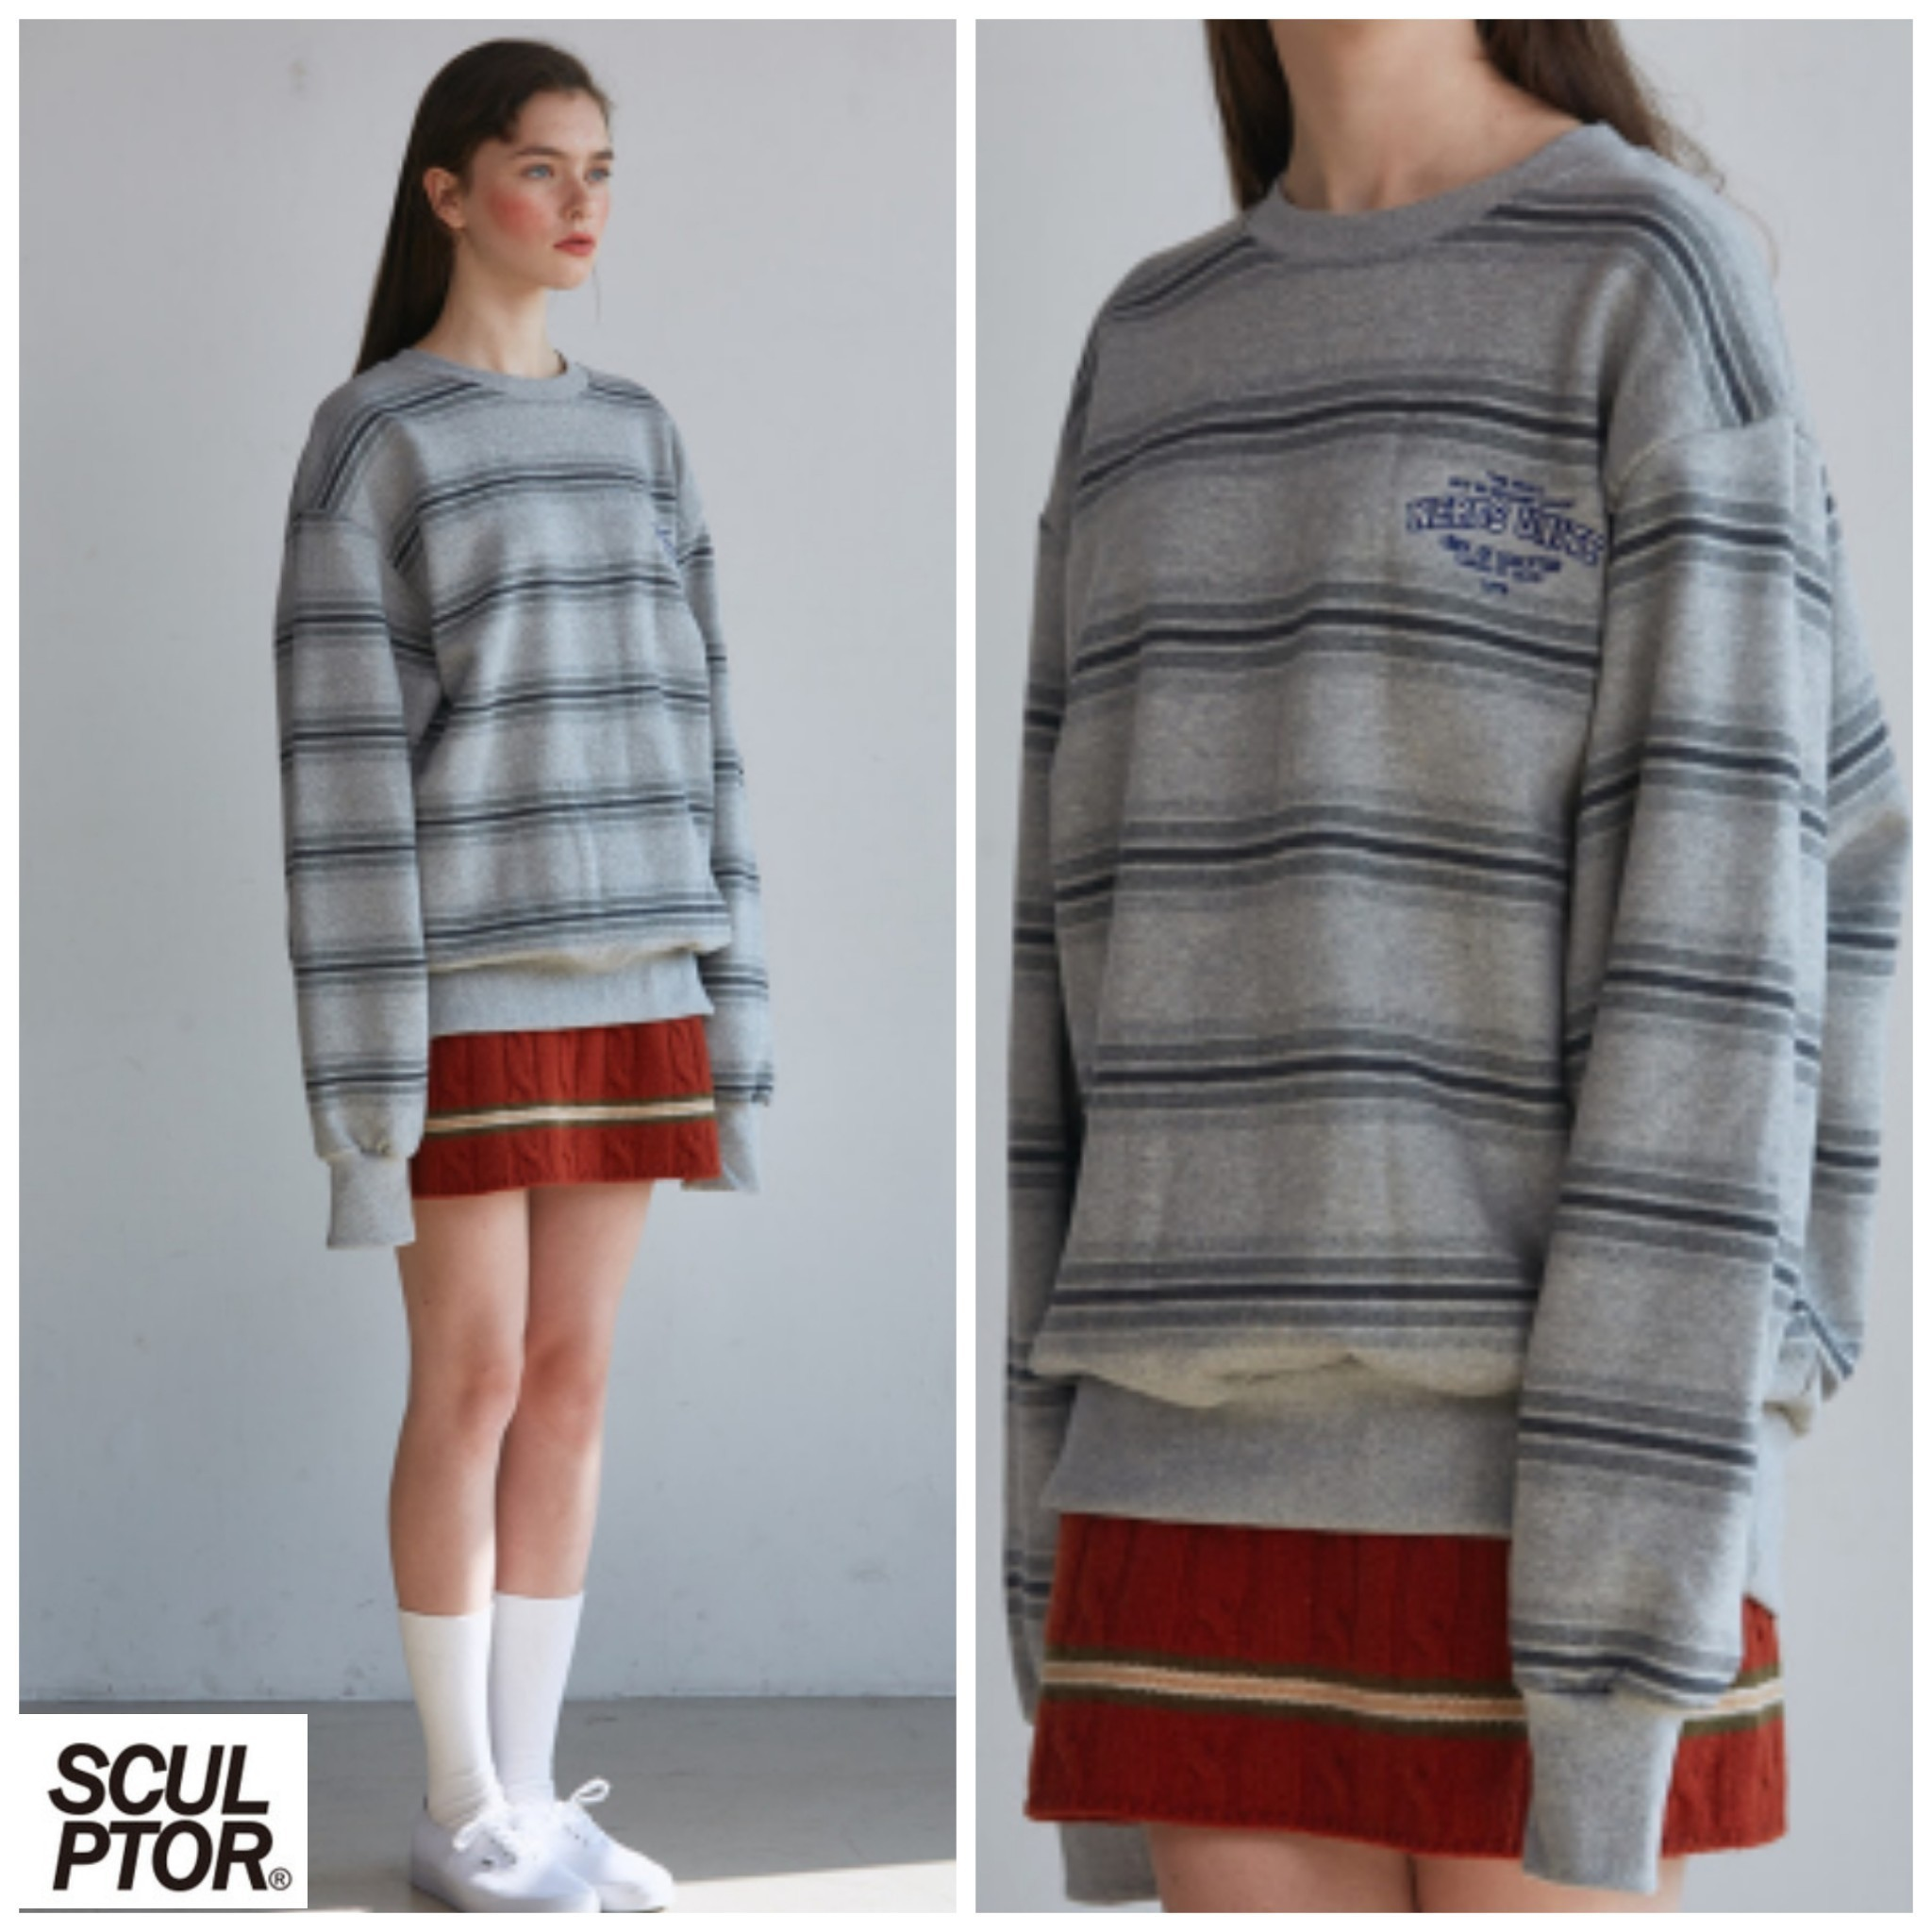 新作★SCULPTOR(スカルプター)★NERD UNITED SWEATSHIRT [GREY]